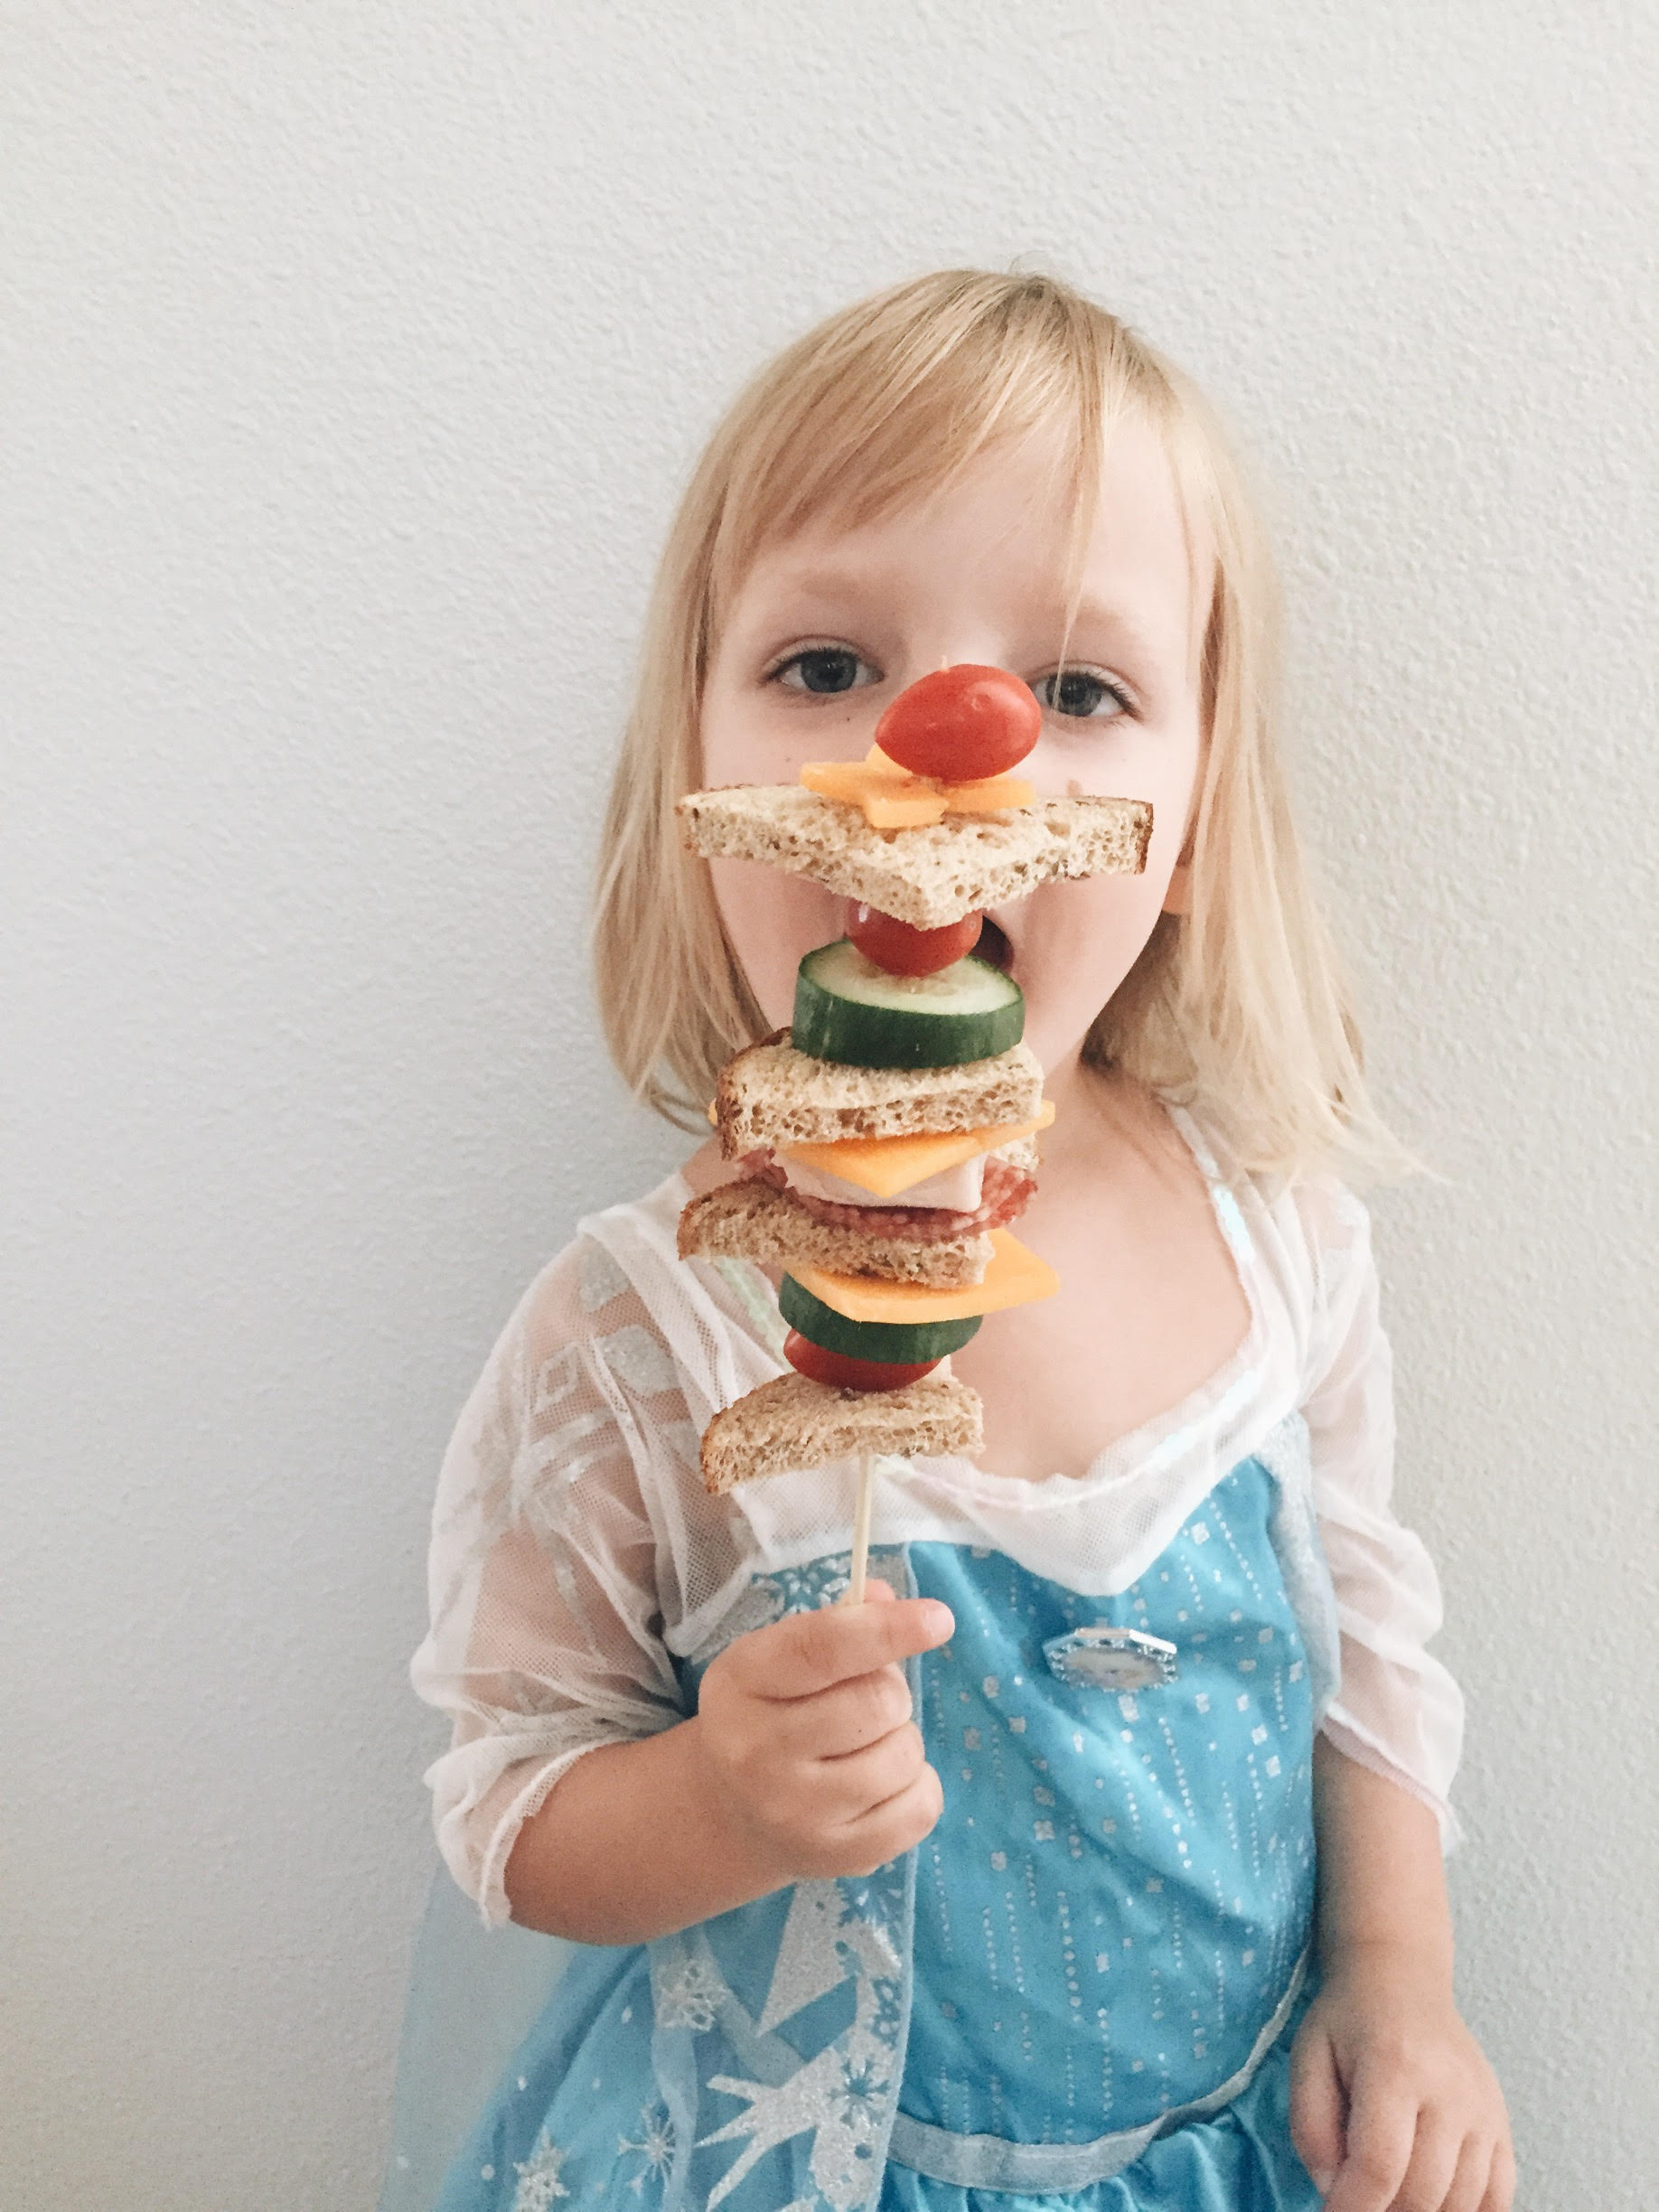 My little taste tester, Queen Elsa. When I got home from work her and Nana were very busy with a costume parade but she immediately stopped to try out this sandwich. It's a winner!